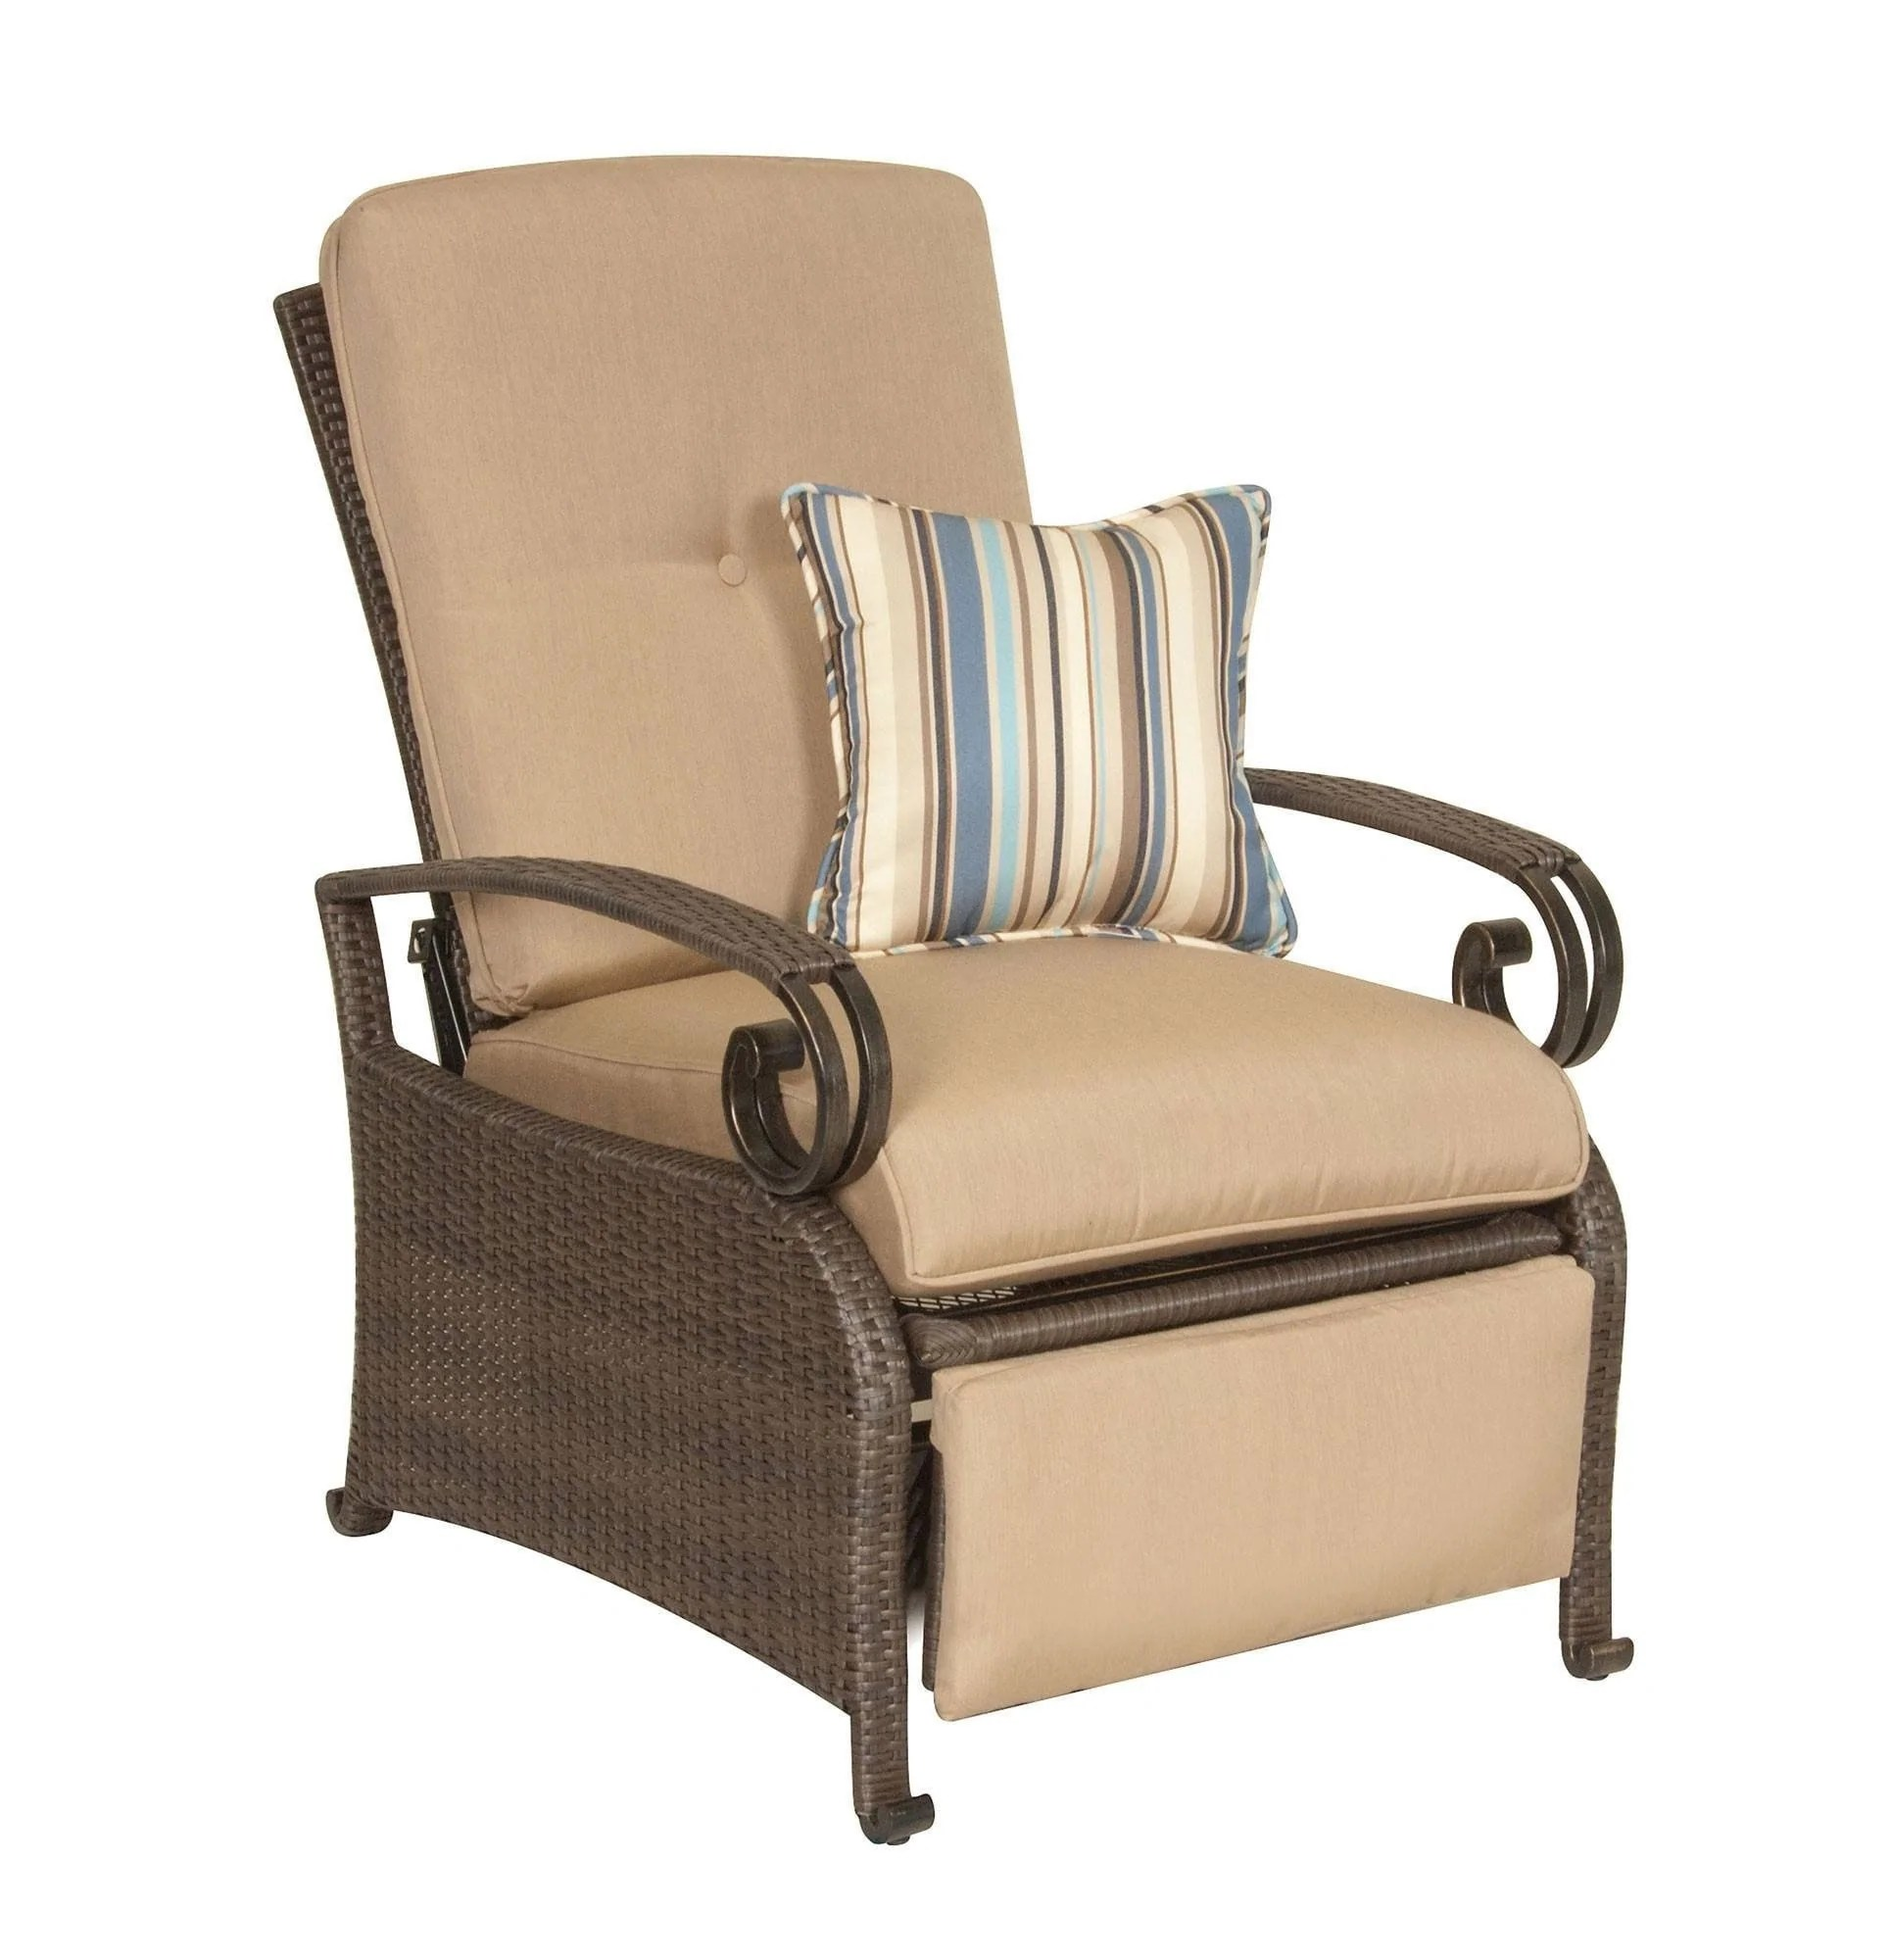 reclining patio chairs and table backwash for sale lake como combo two recliners side khaki